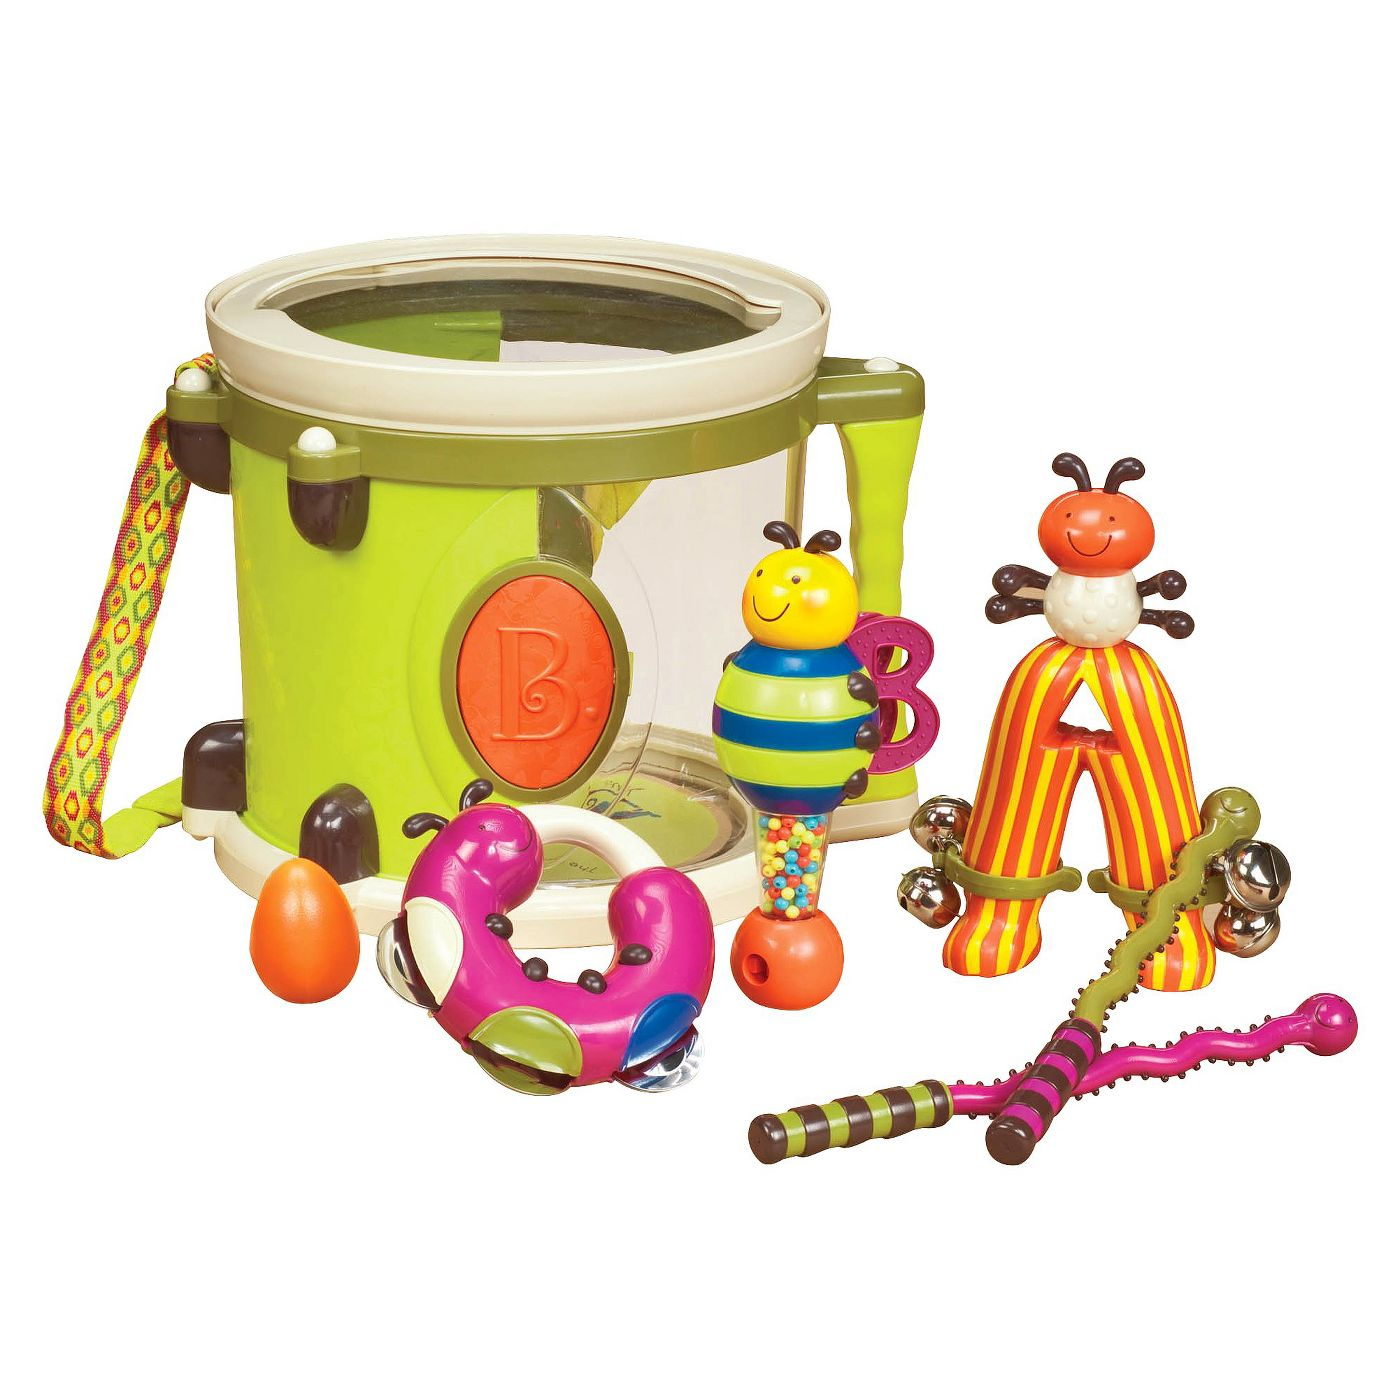 B. toys Toy Drum Set 7 Instruments - Parum Pum Pum - image 1 of 5